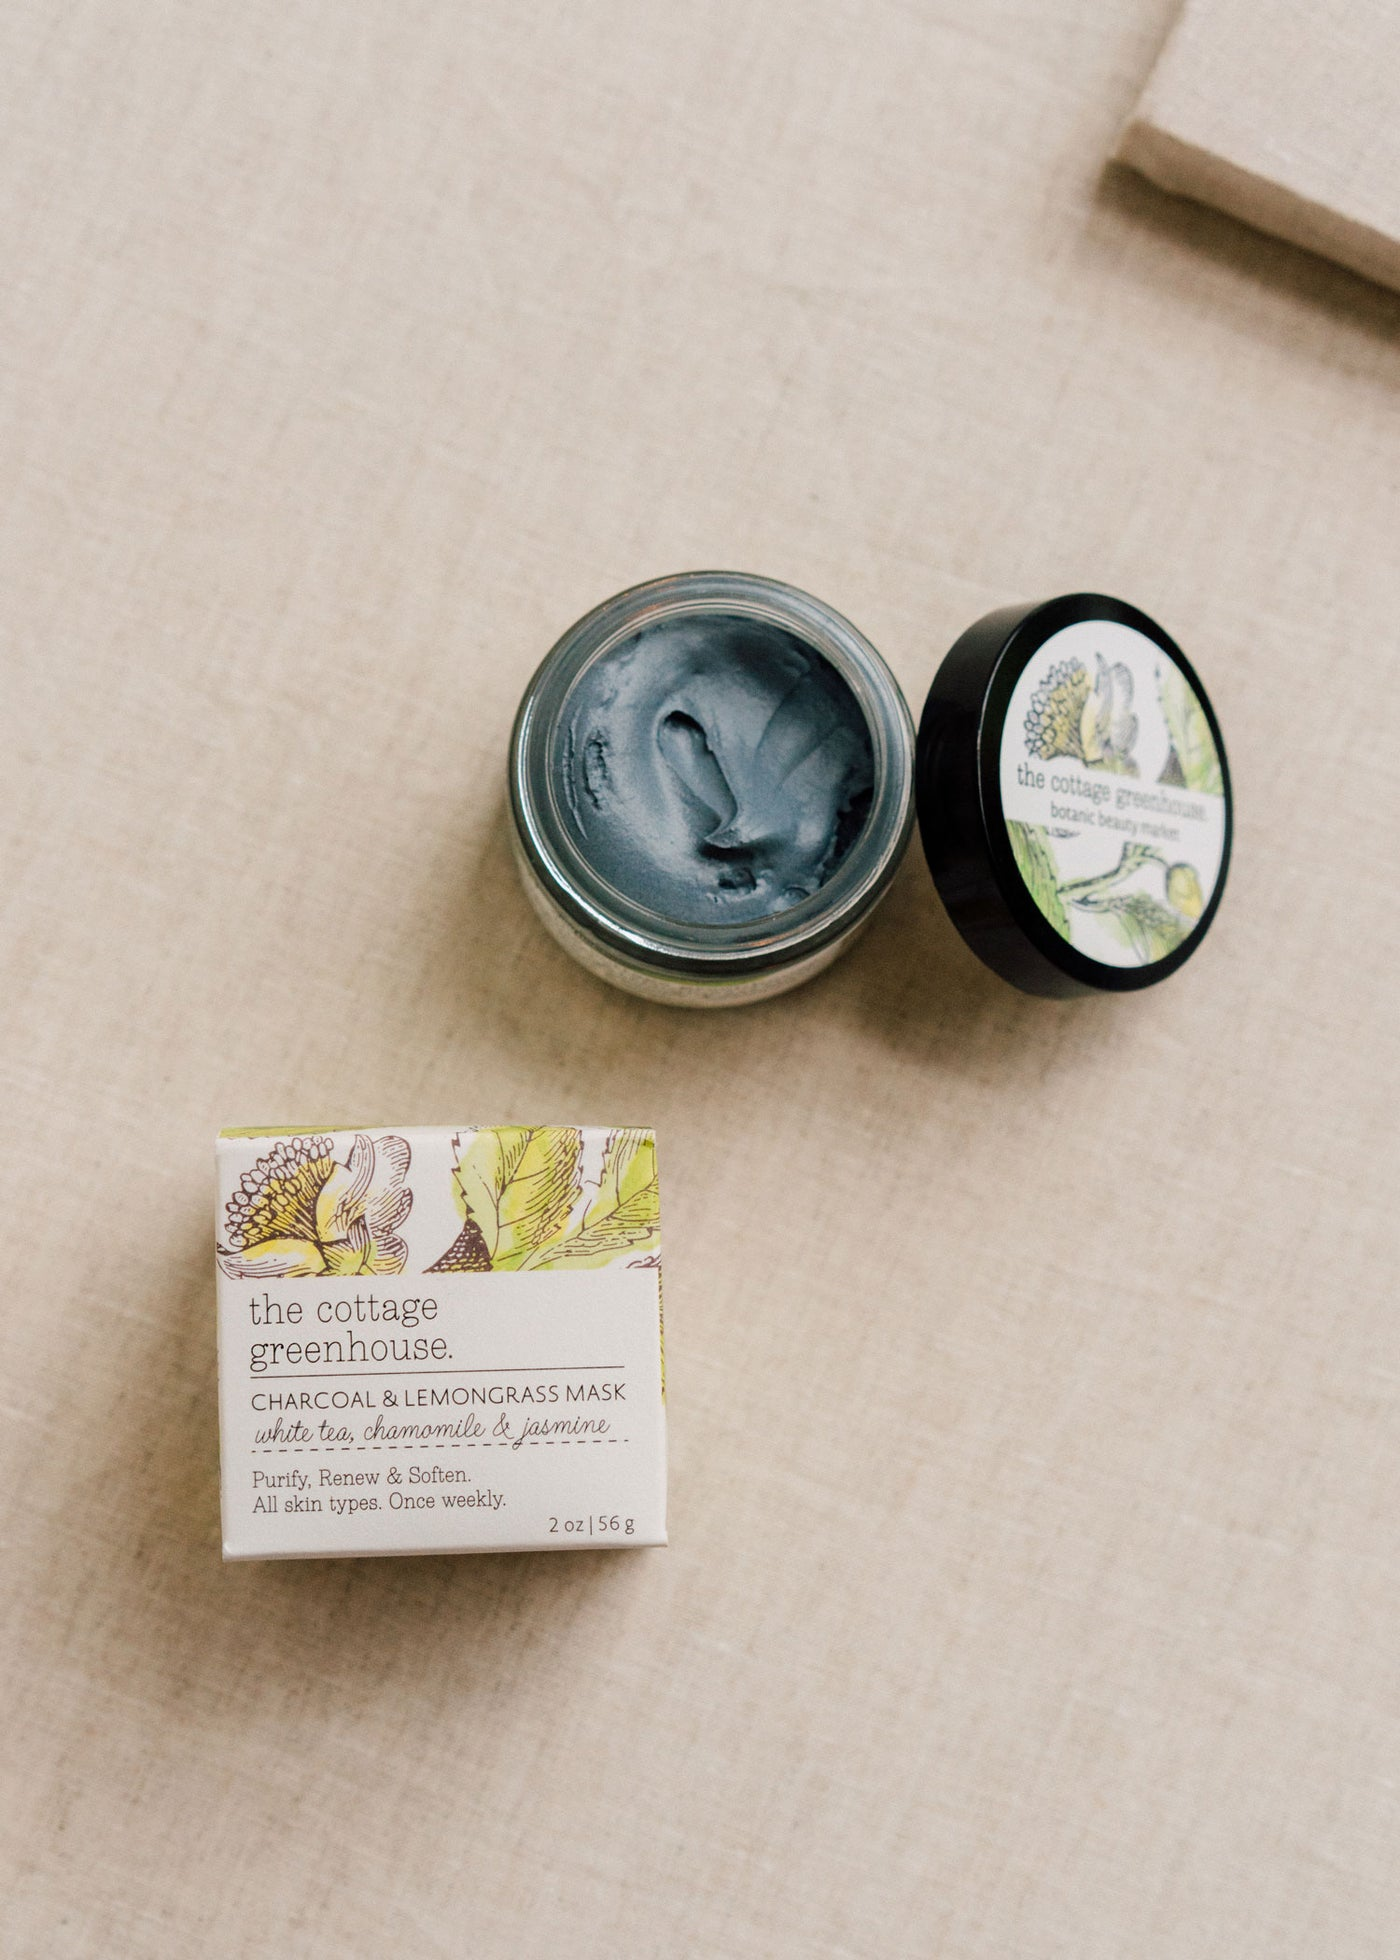 Charcoal & Lemongrass Face Mask